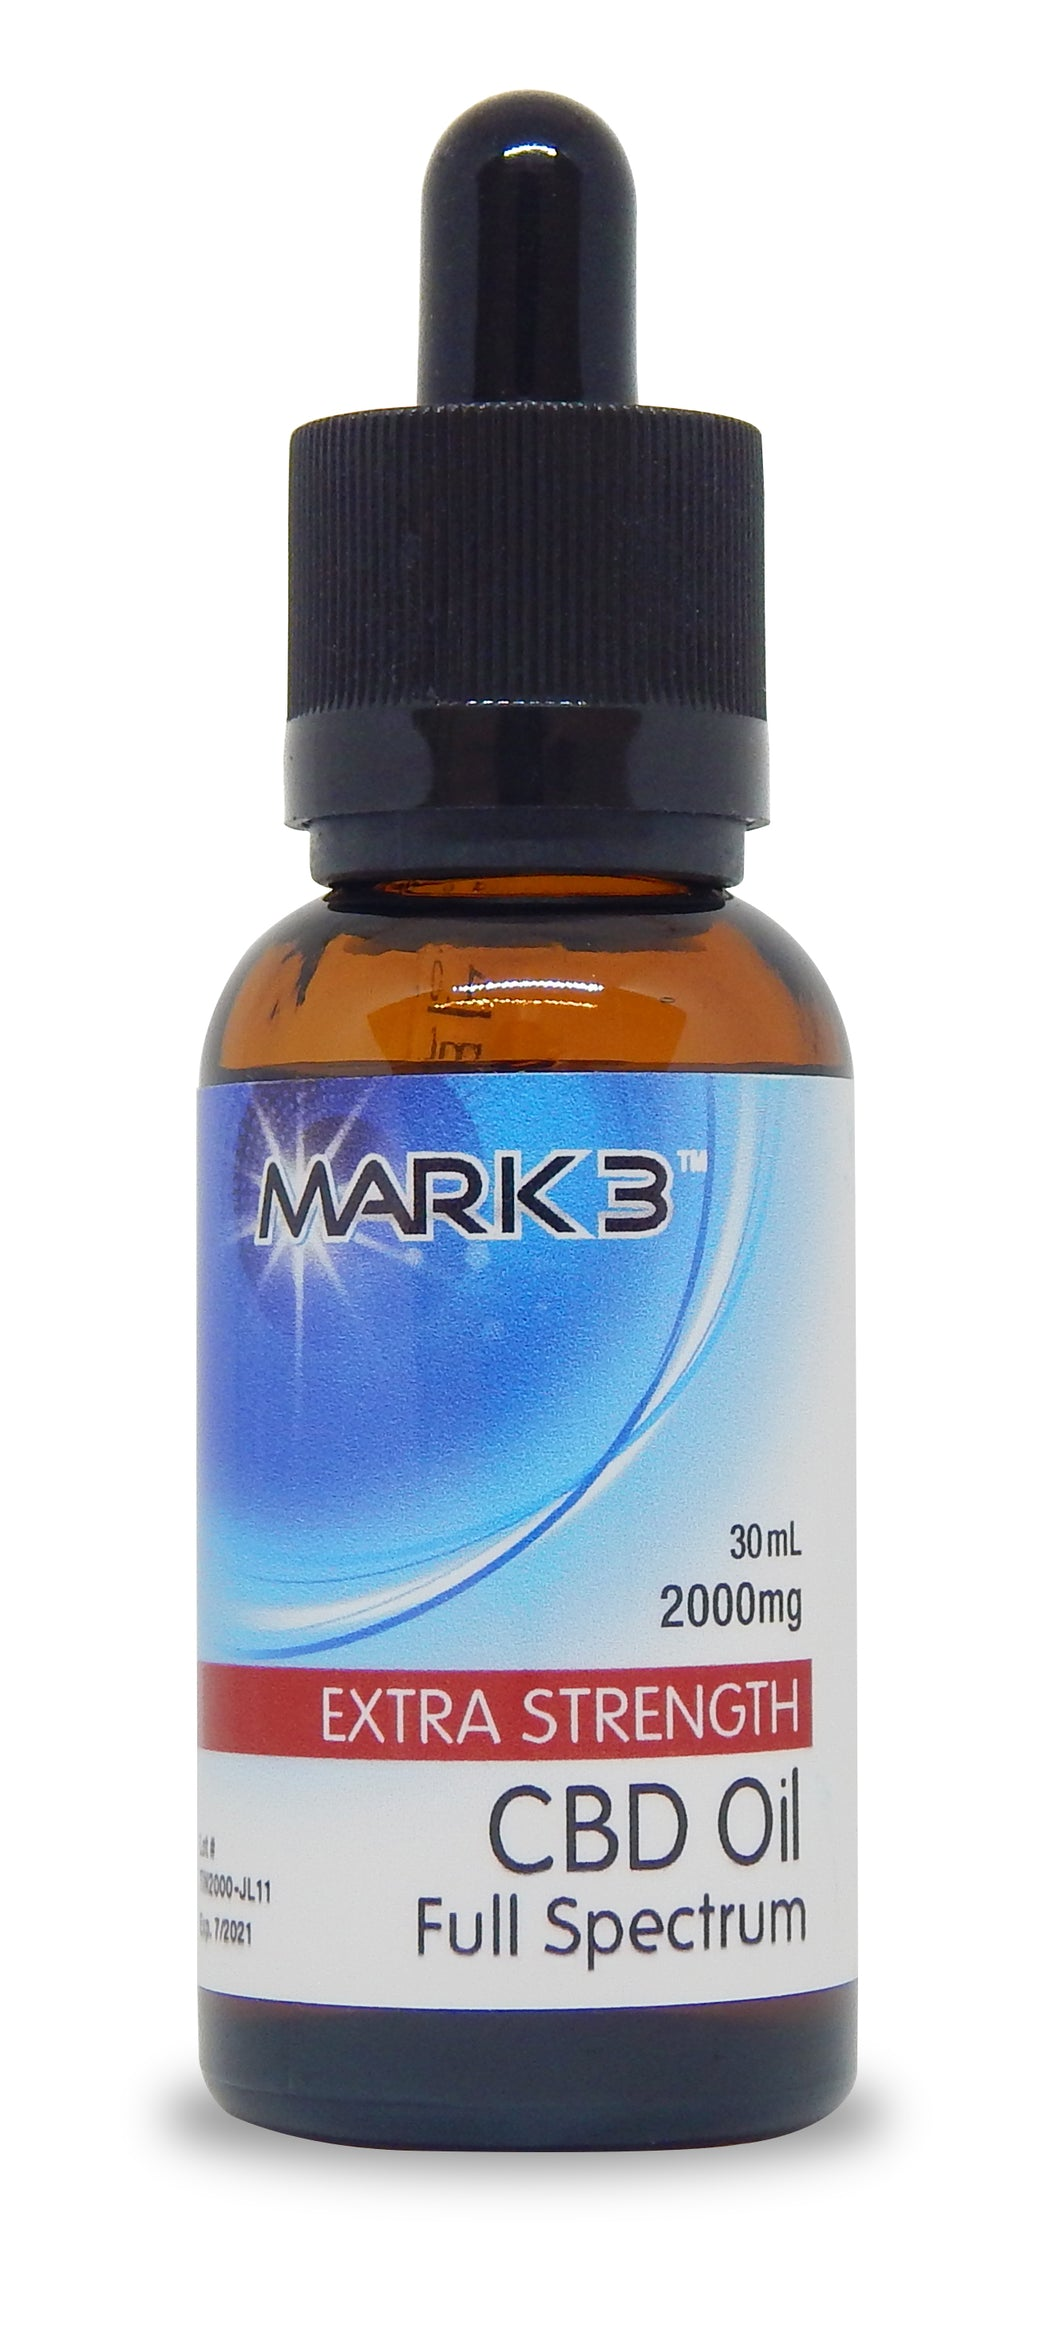 MARK3 CBD Oil Full Spectrum Natural Flavor - 1,000mg